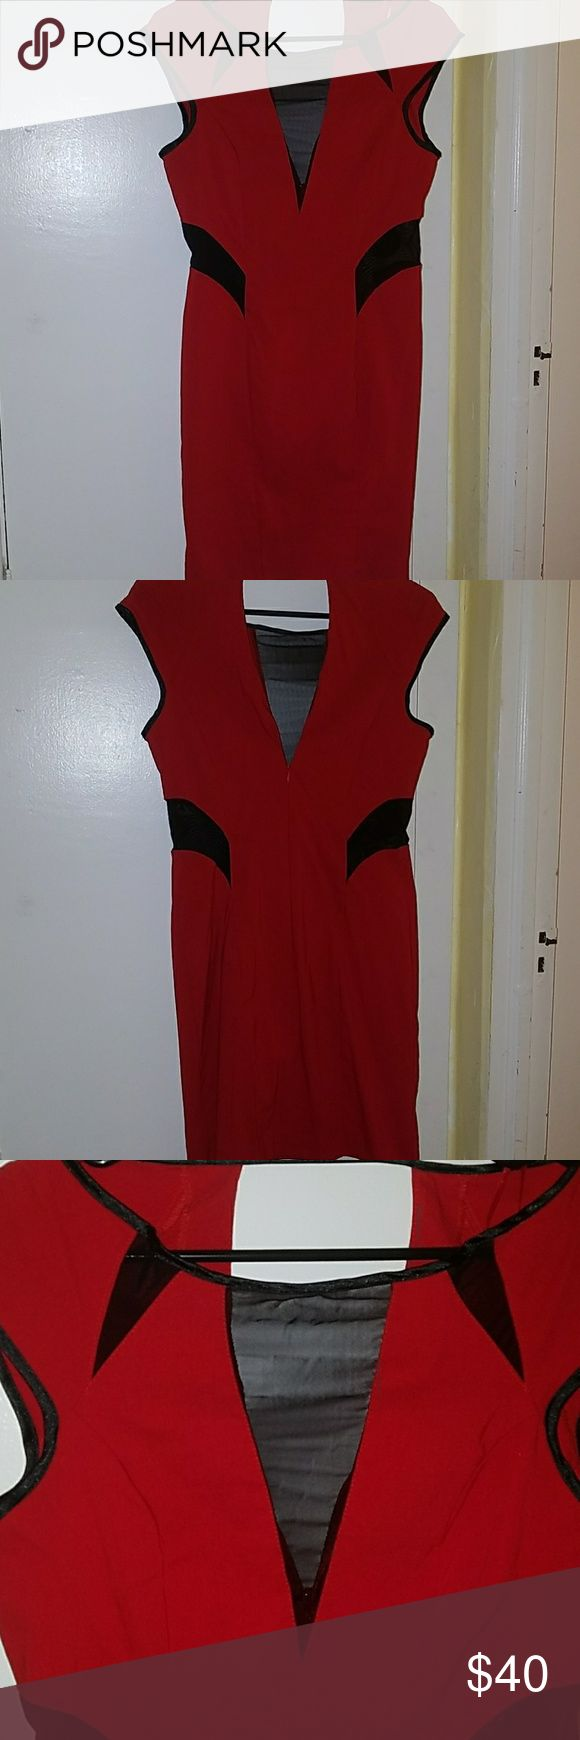 Miss Selfridge Red Mesh Peek A Boo Dress Miss Selfridge Brand Sexy Red Body Con Dress Black Mesh Insert Details on Chest and Waist US Size 10/UK Size 14 Worn Once- Very Good Condition Miss Selfridge Dresses